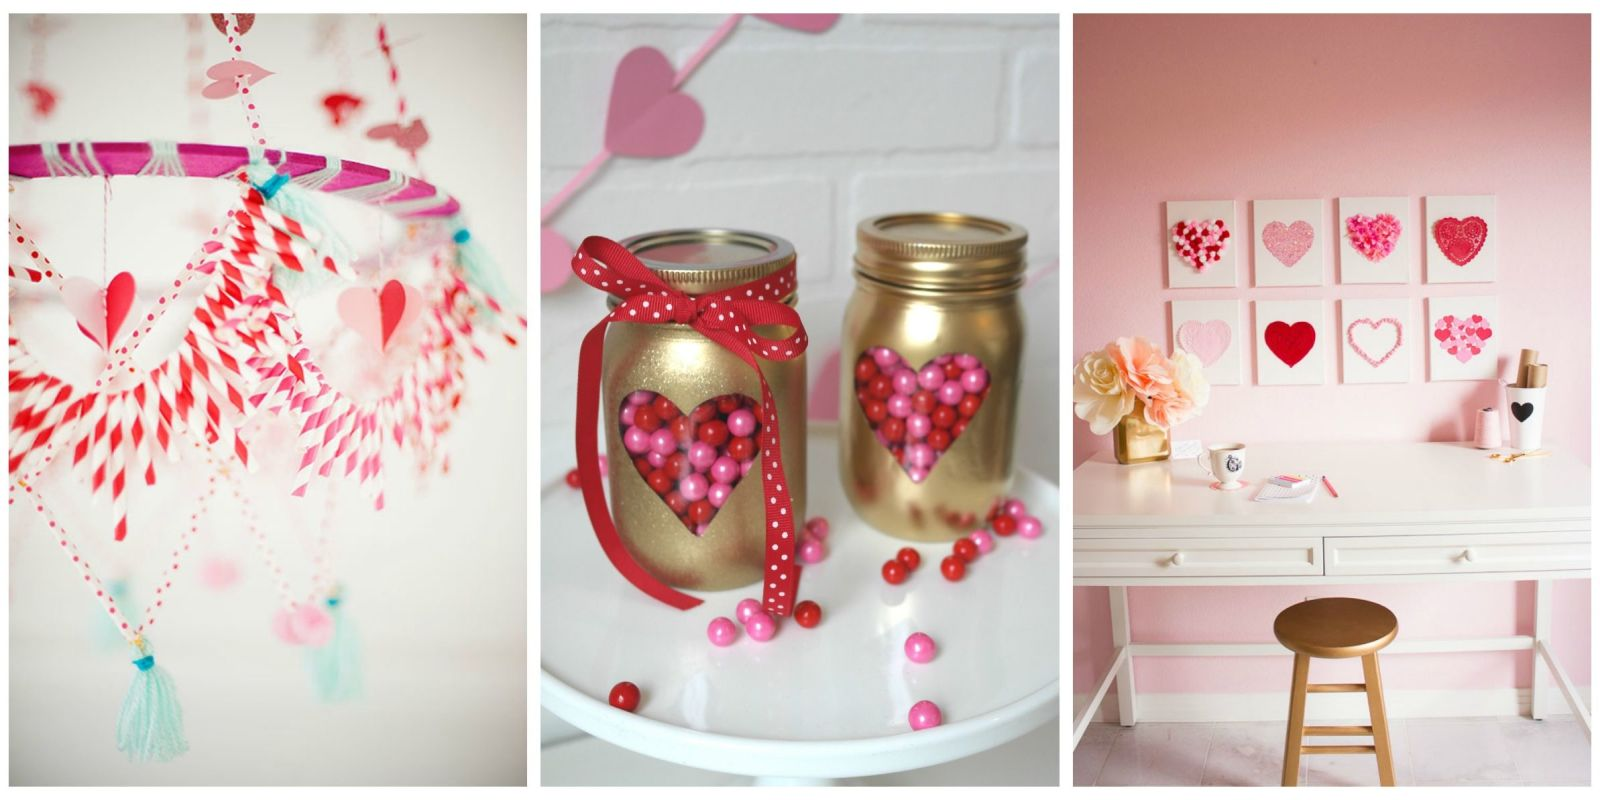 17 Easy Diy Valentine 39 S Day Decorations That Aren 39 T Cheesy